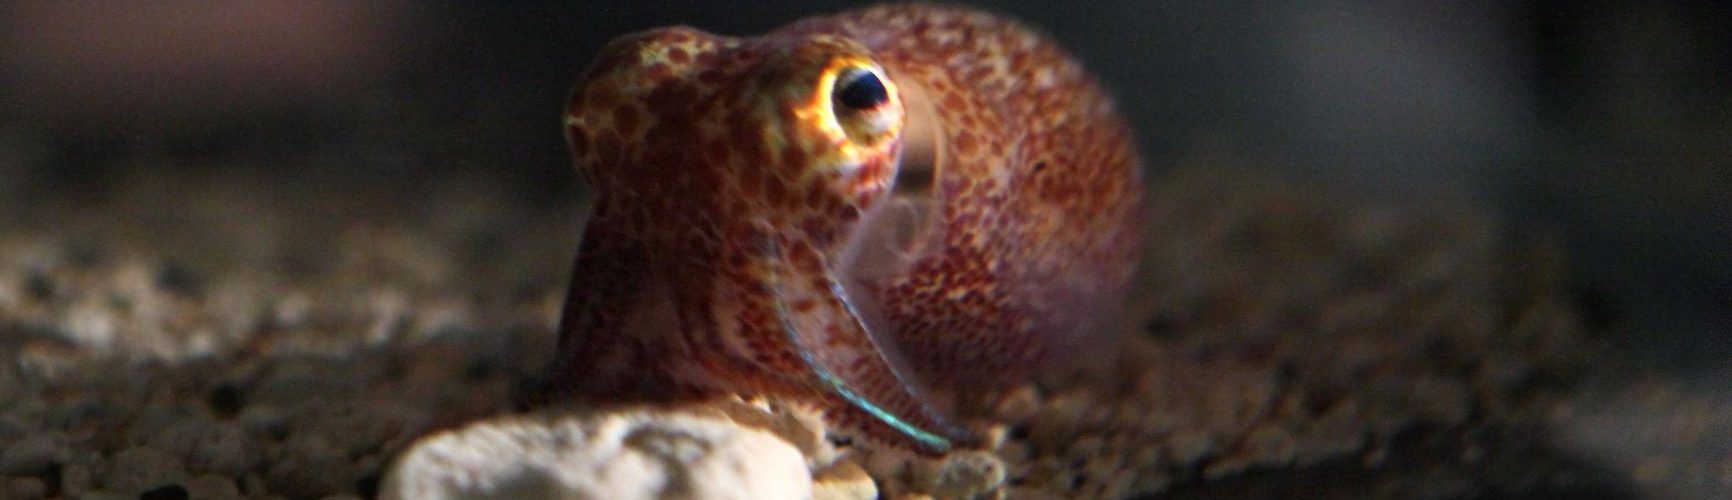 Hawaiian bobtail squid typically grow to around a golf ball in size, and have no outer protection from predators besides counter-illumination.